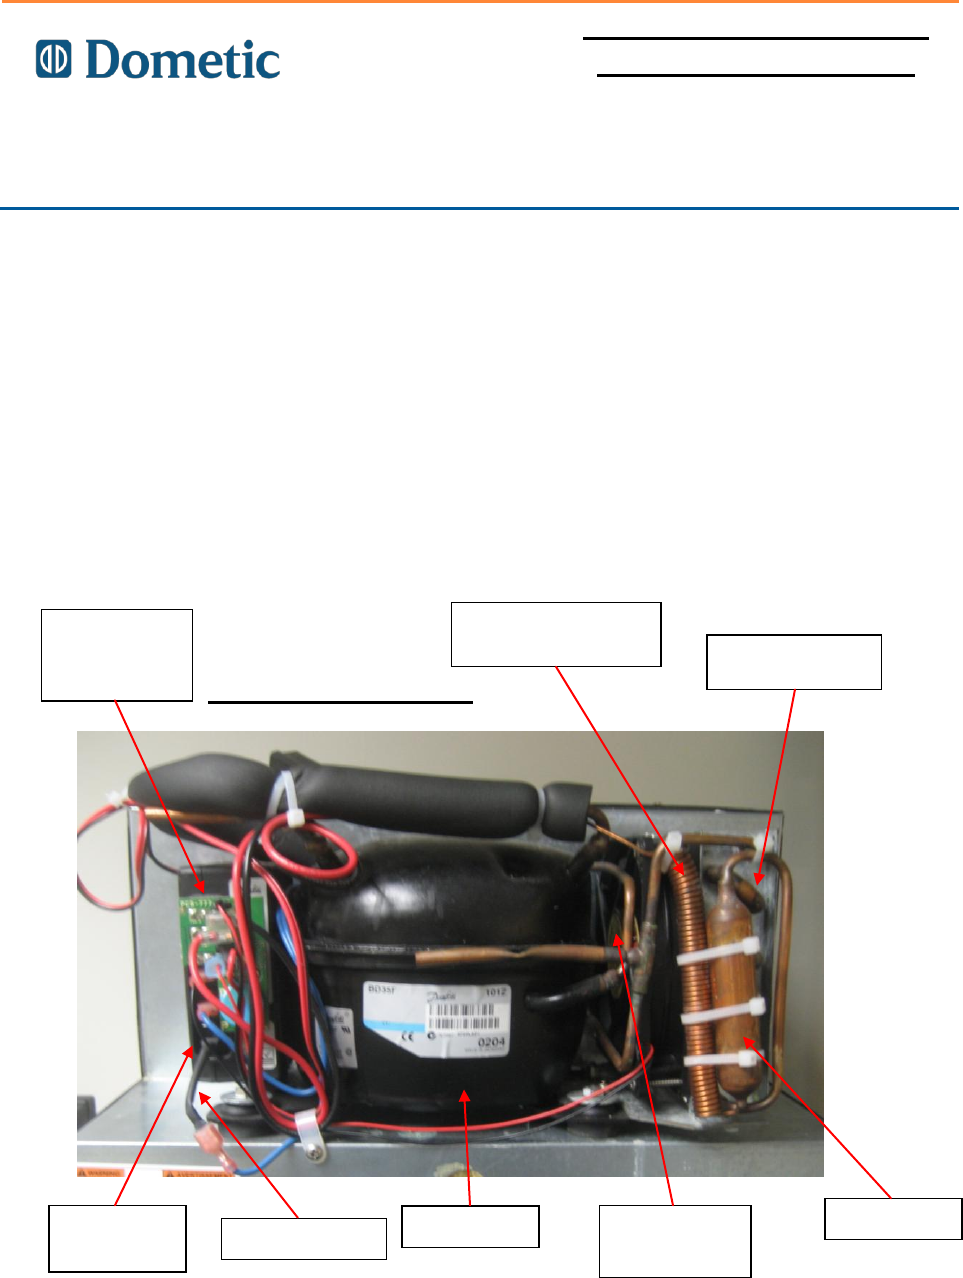 Dometic Refrigerator Troubleshooting Rm2652 Wiring Schematic Images